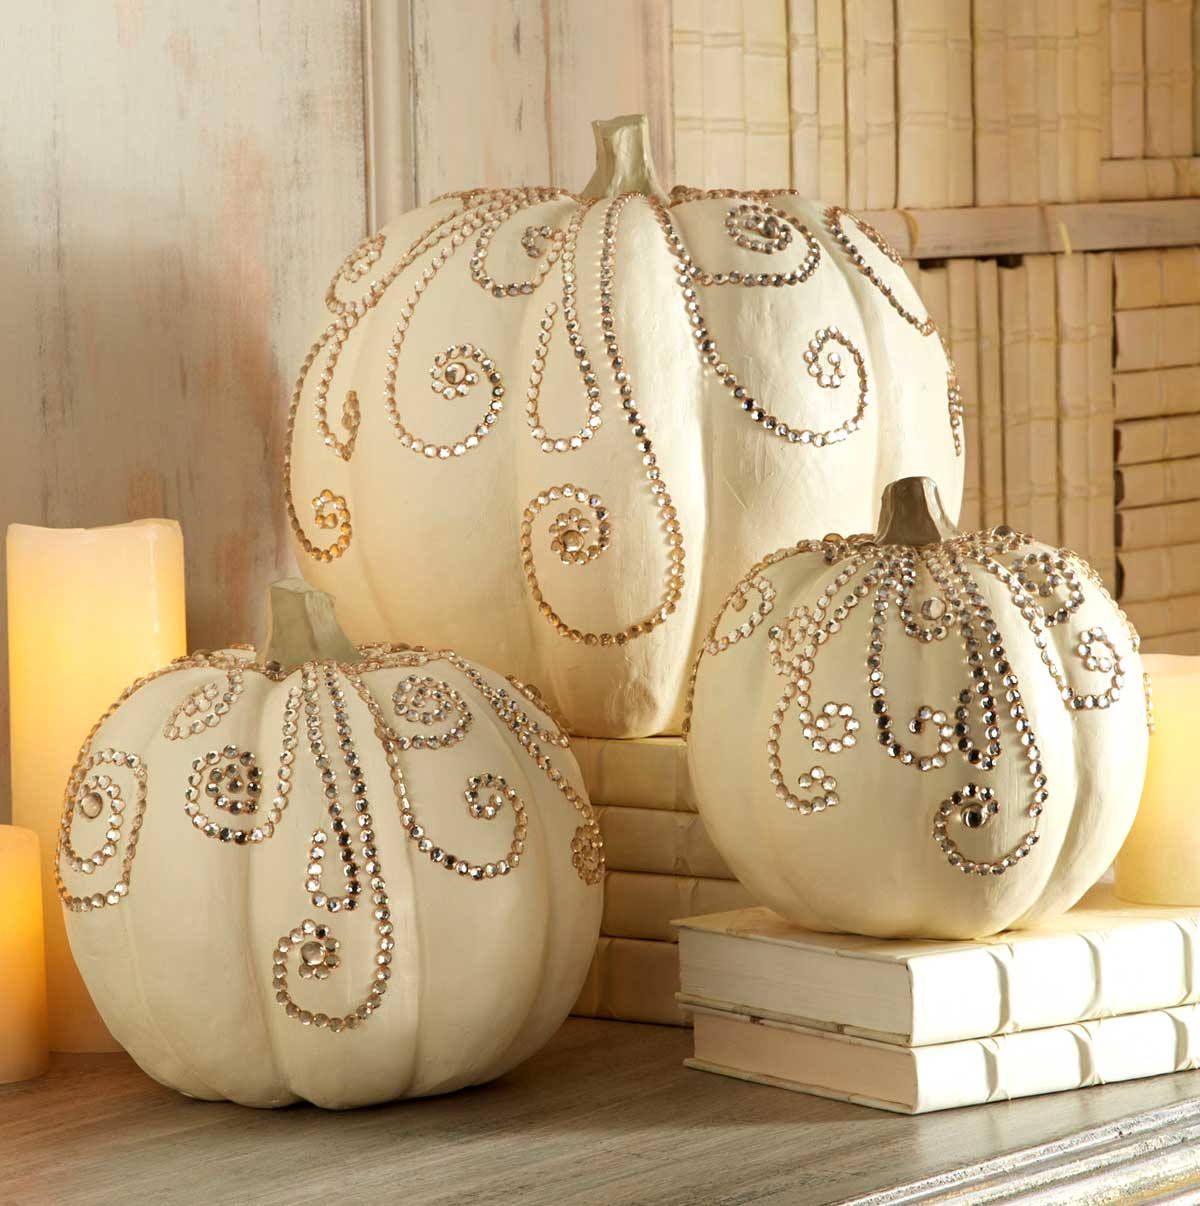 28 Best No Carve Pumpkin Decorating Ideas and Designs for 2018 7  Bedazzled and Bewitched